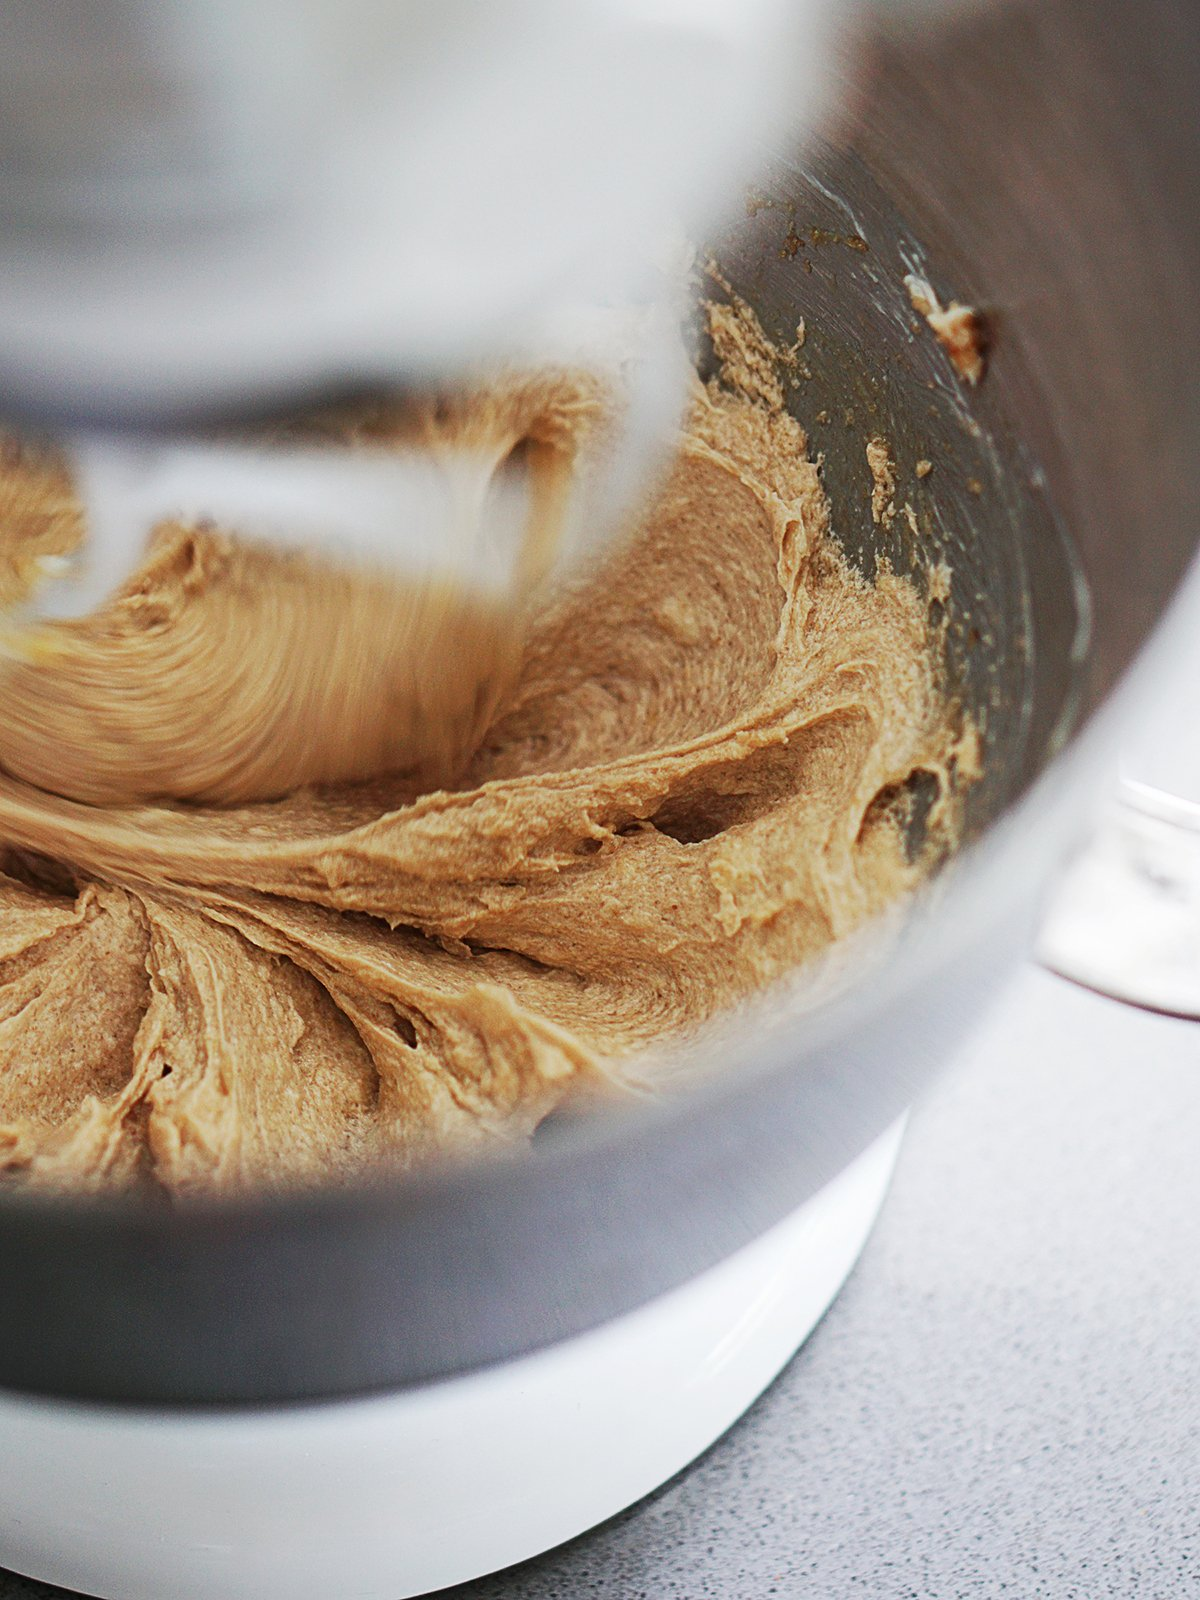 Cookie dough being mixed.